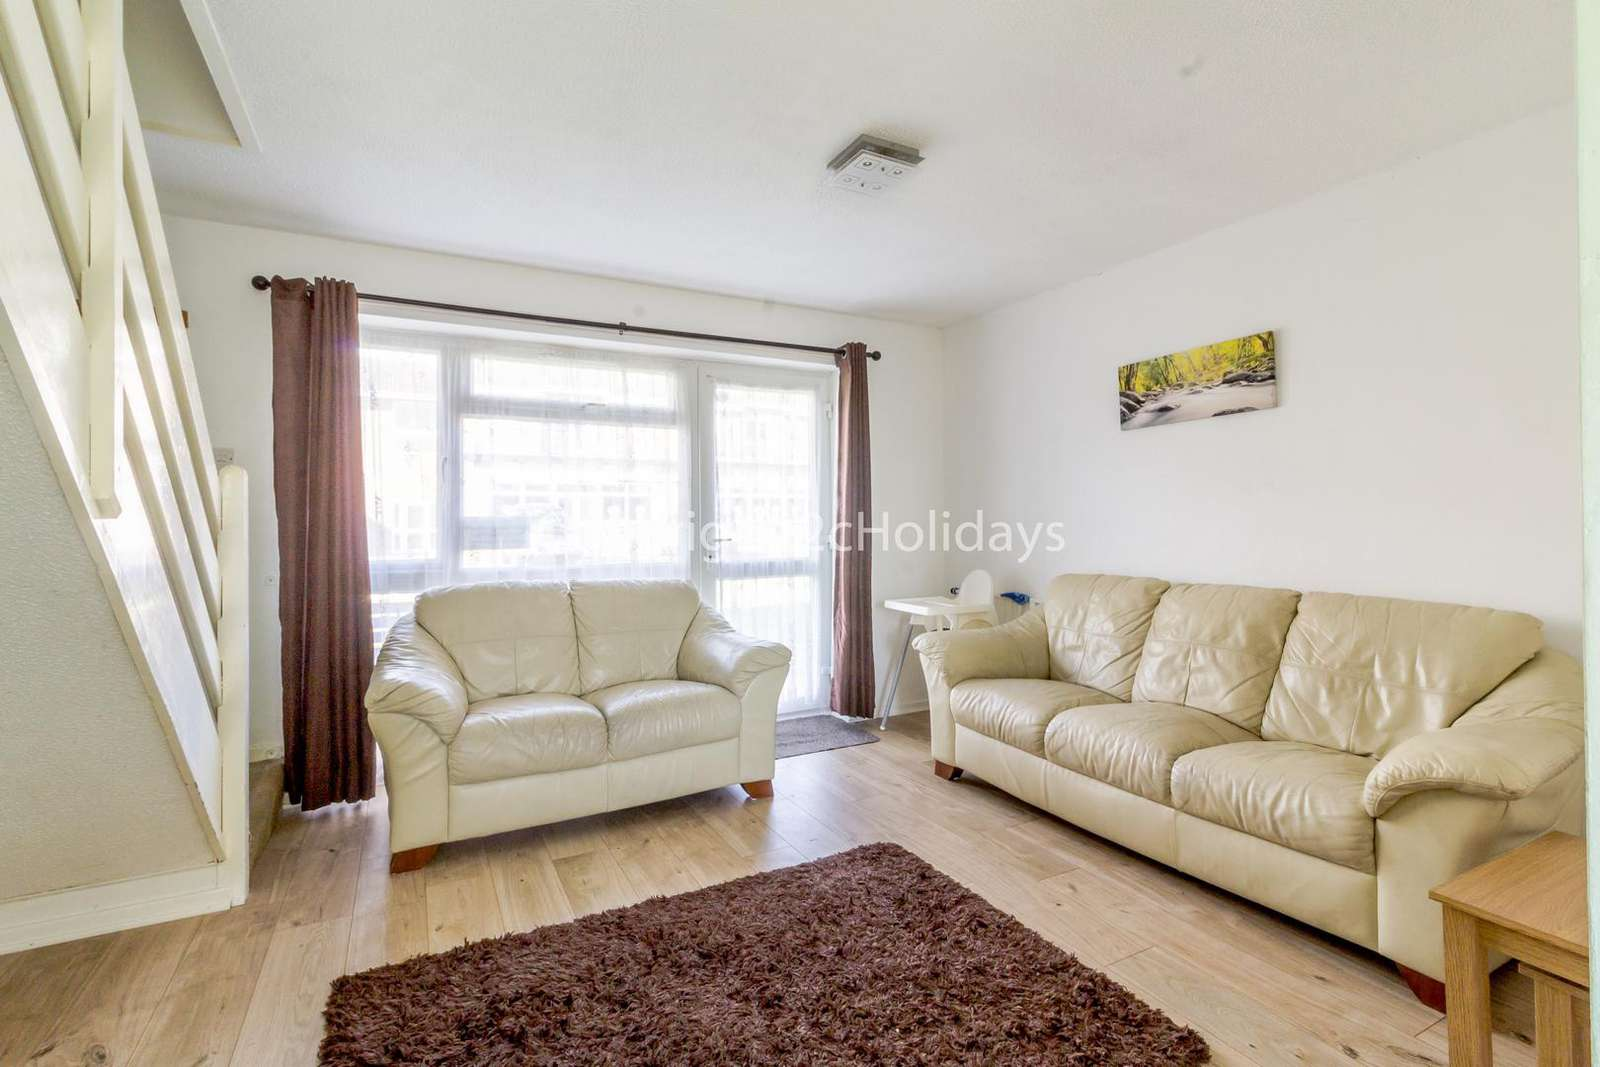 Very spacious and comfortable lounge to relax in